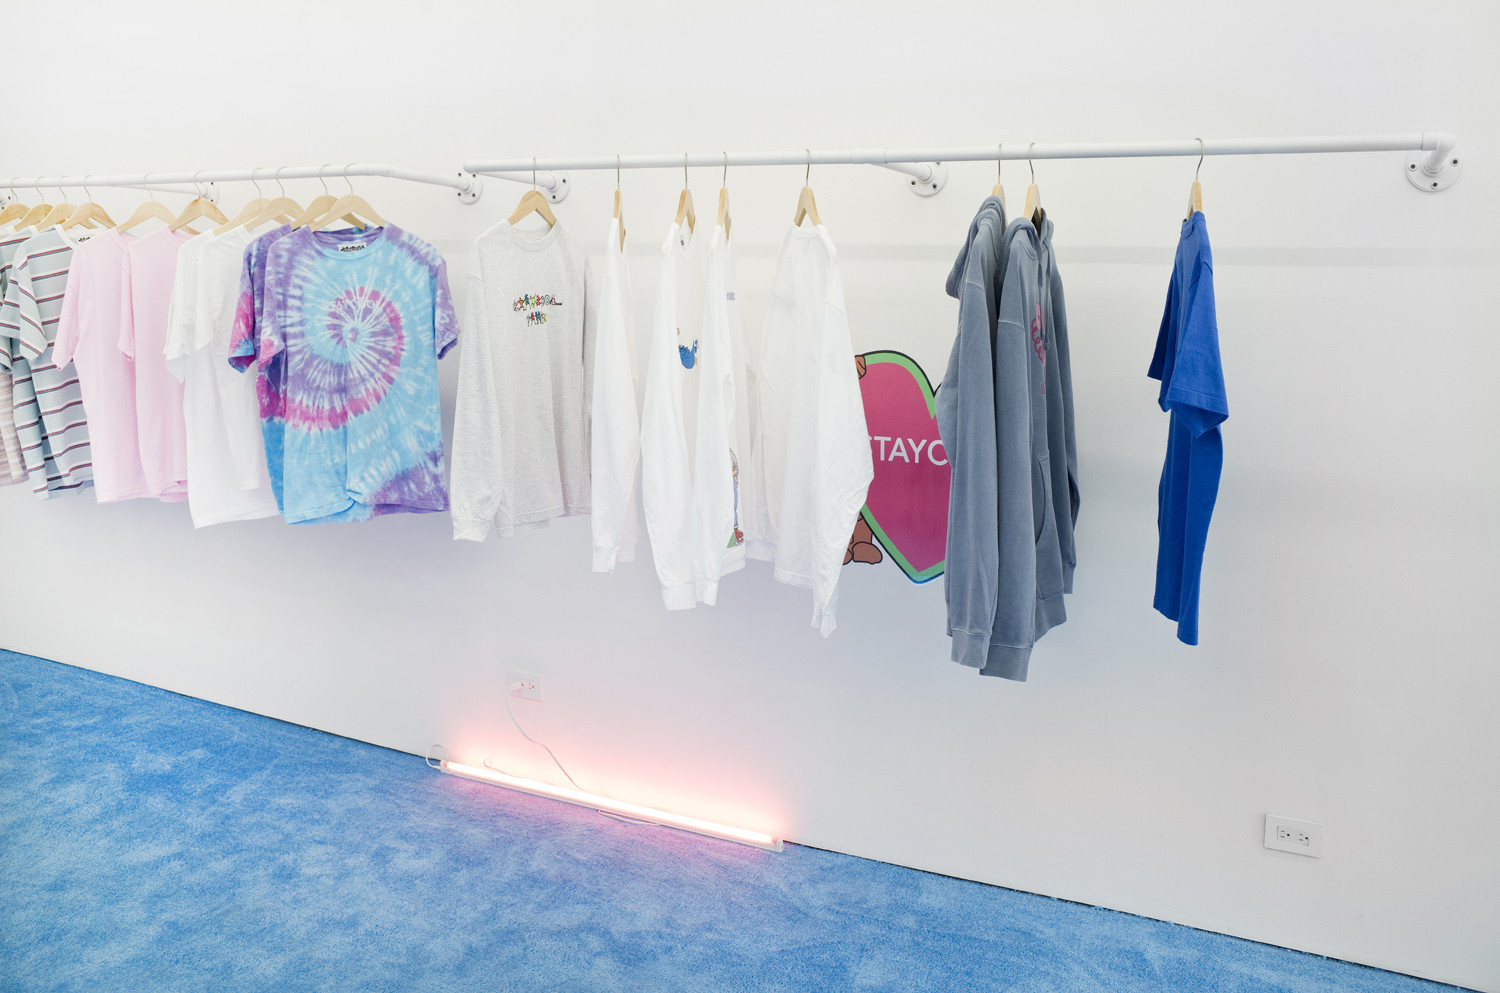 Stay Cool Pop-Up at 208 Bowery